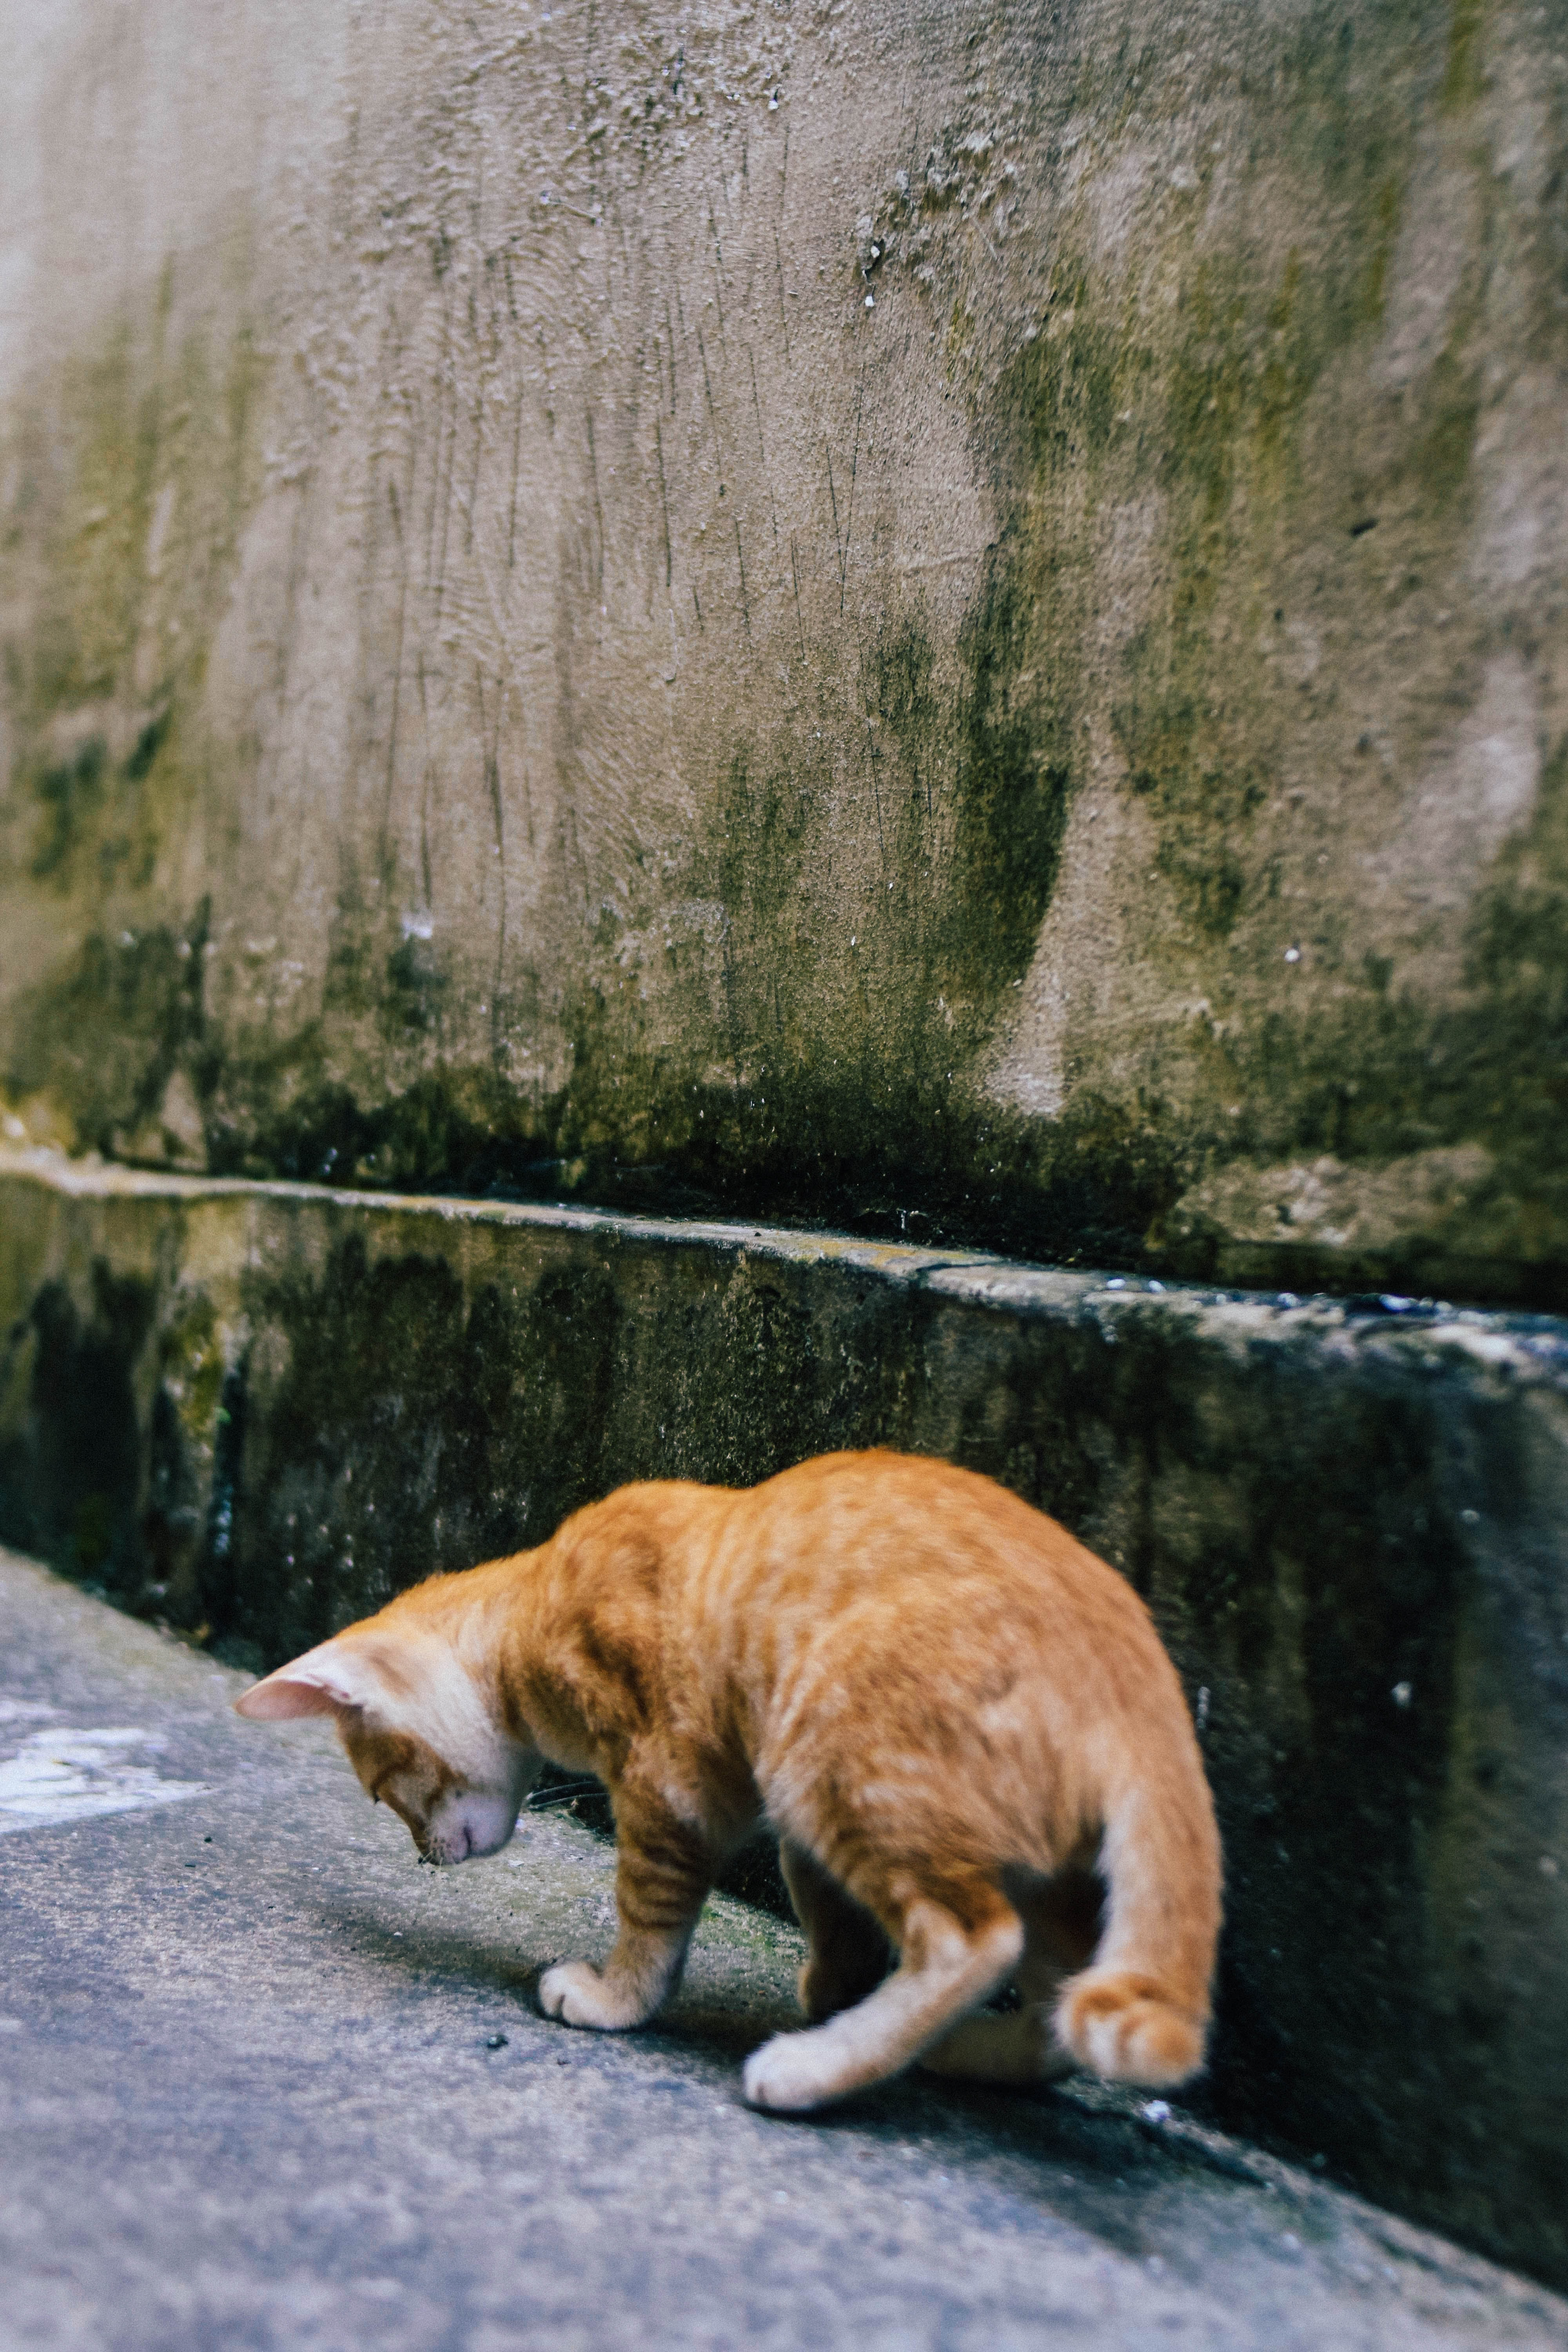 brown and white cat on concrete ground near body of water